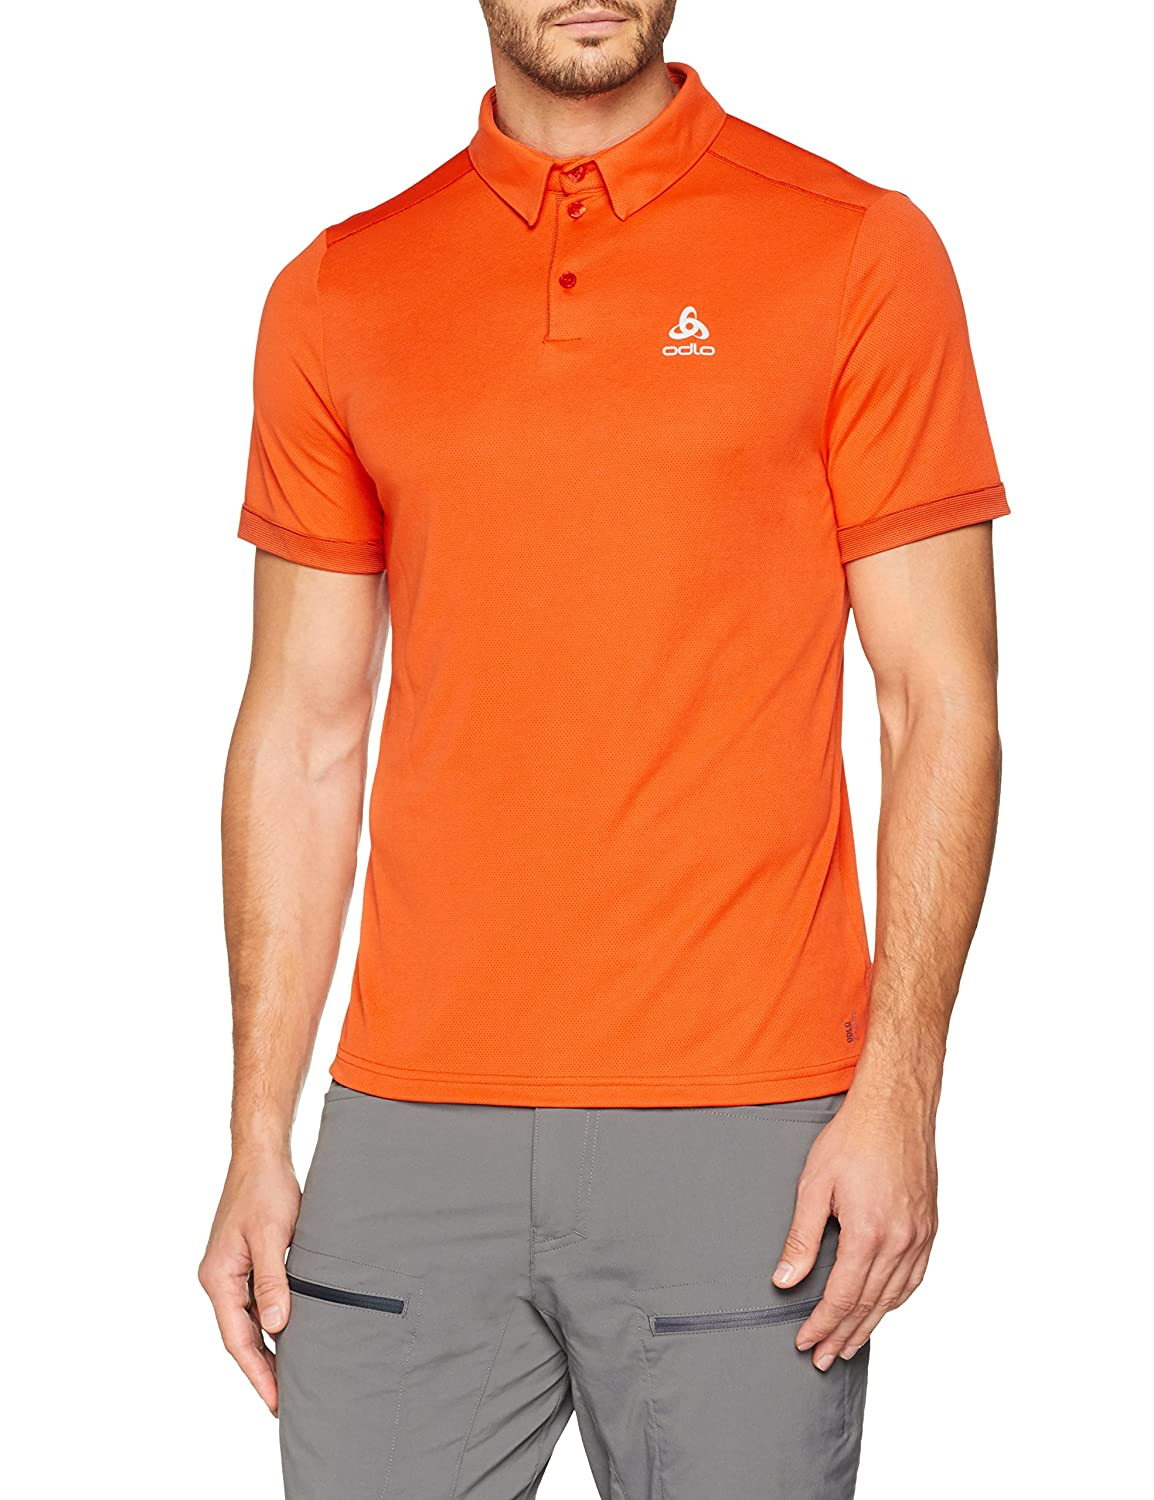 Odlo Polo S S Nikko F-Dry Light Shirt, für Herren